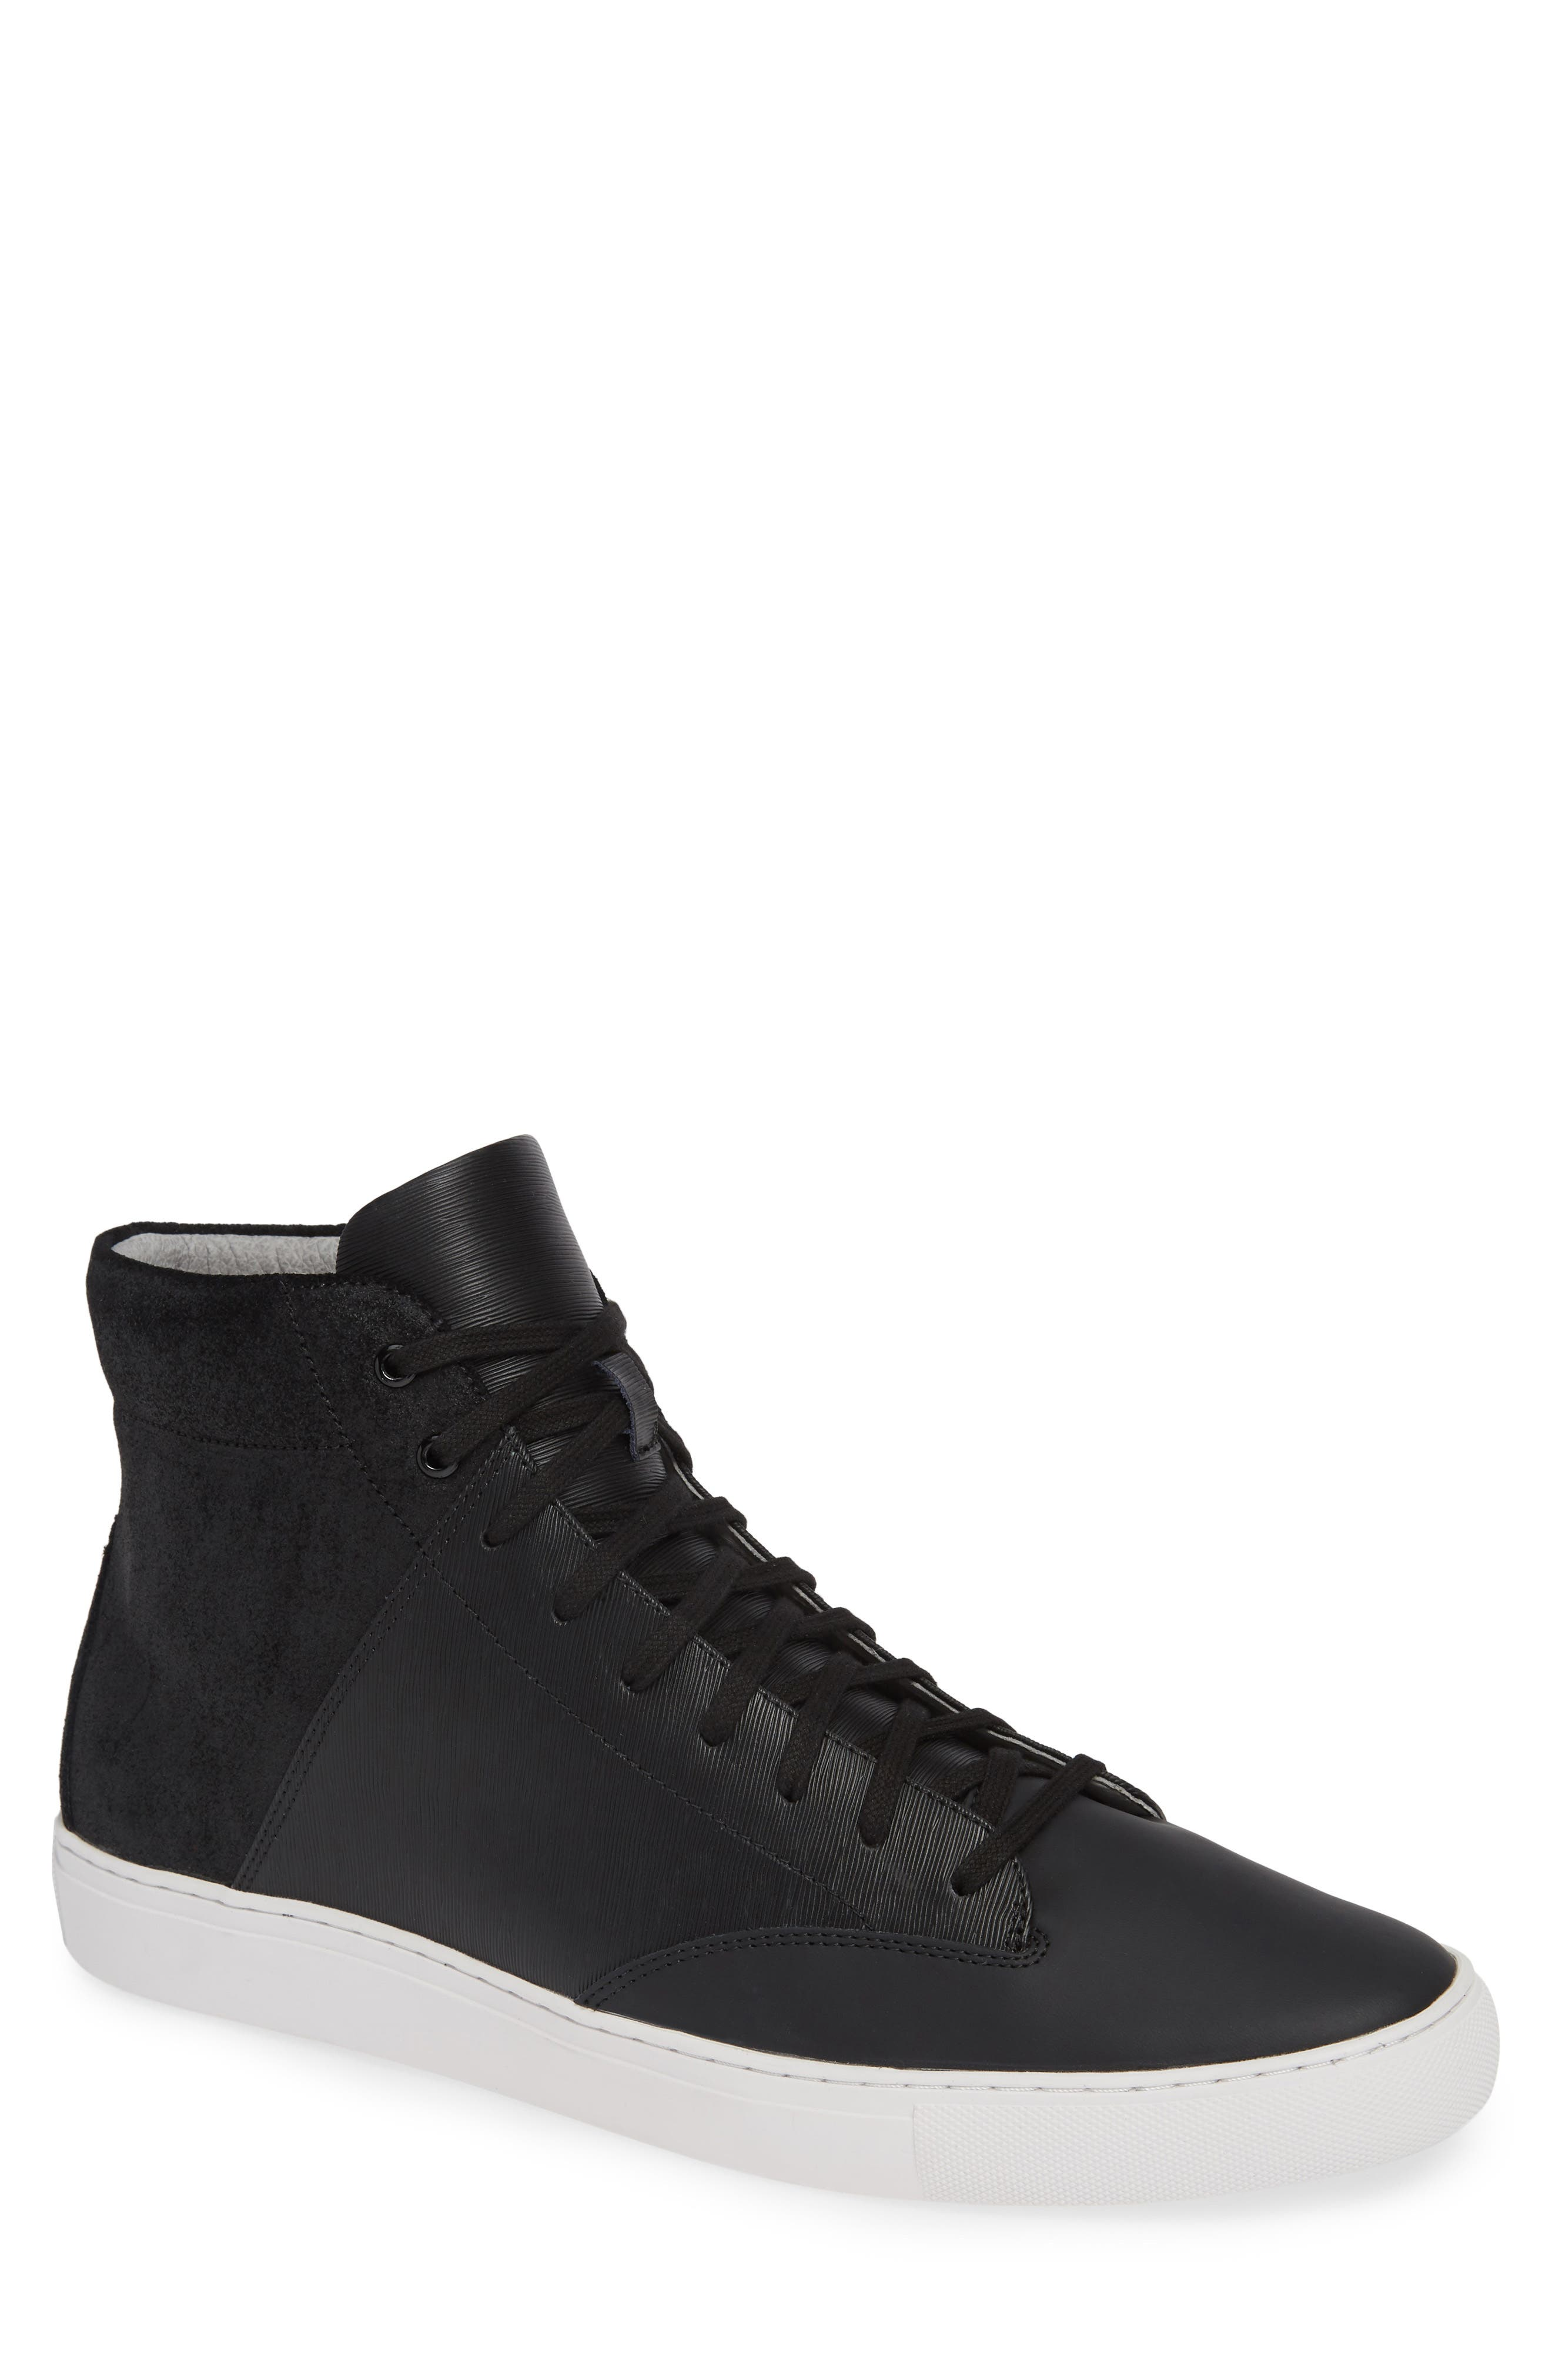 'Porter' High Top Sneaker,                             Main thumbnail 1, color,                             BLACK SUEDE/ LEATHER